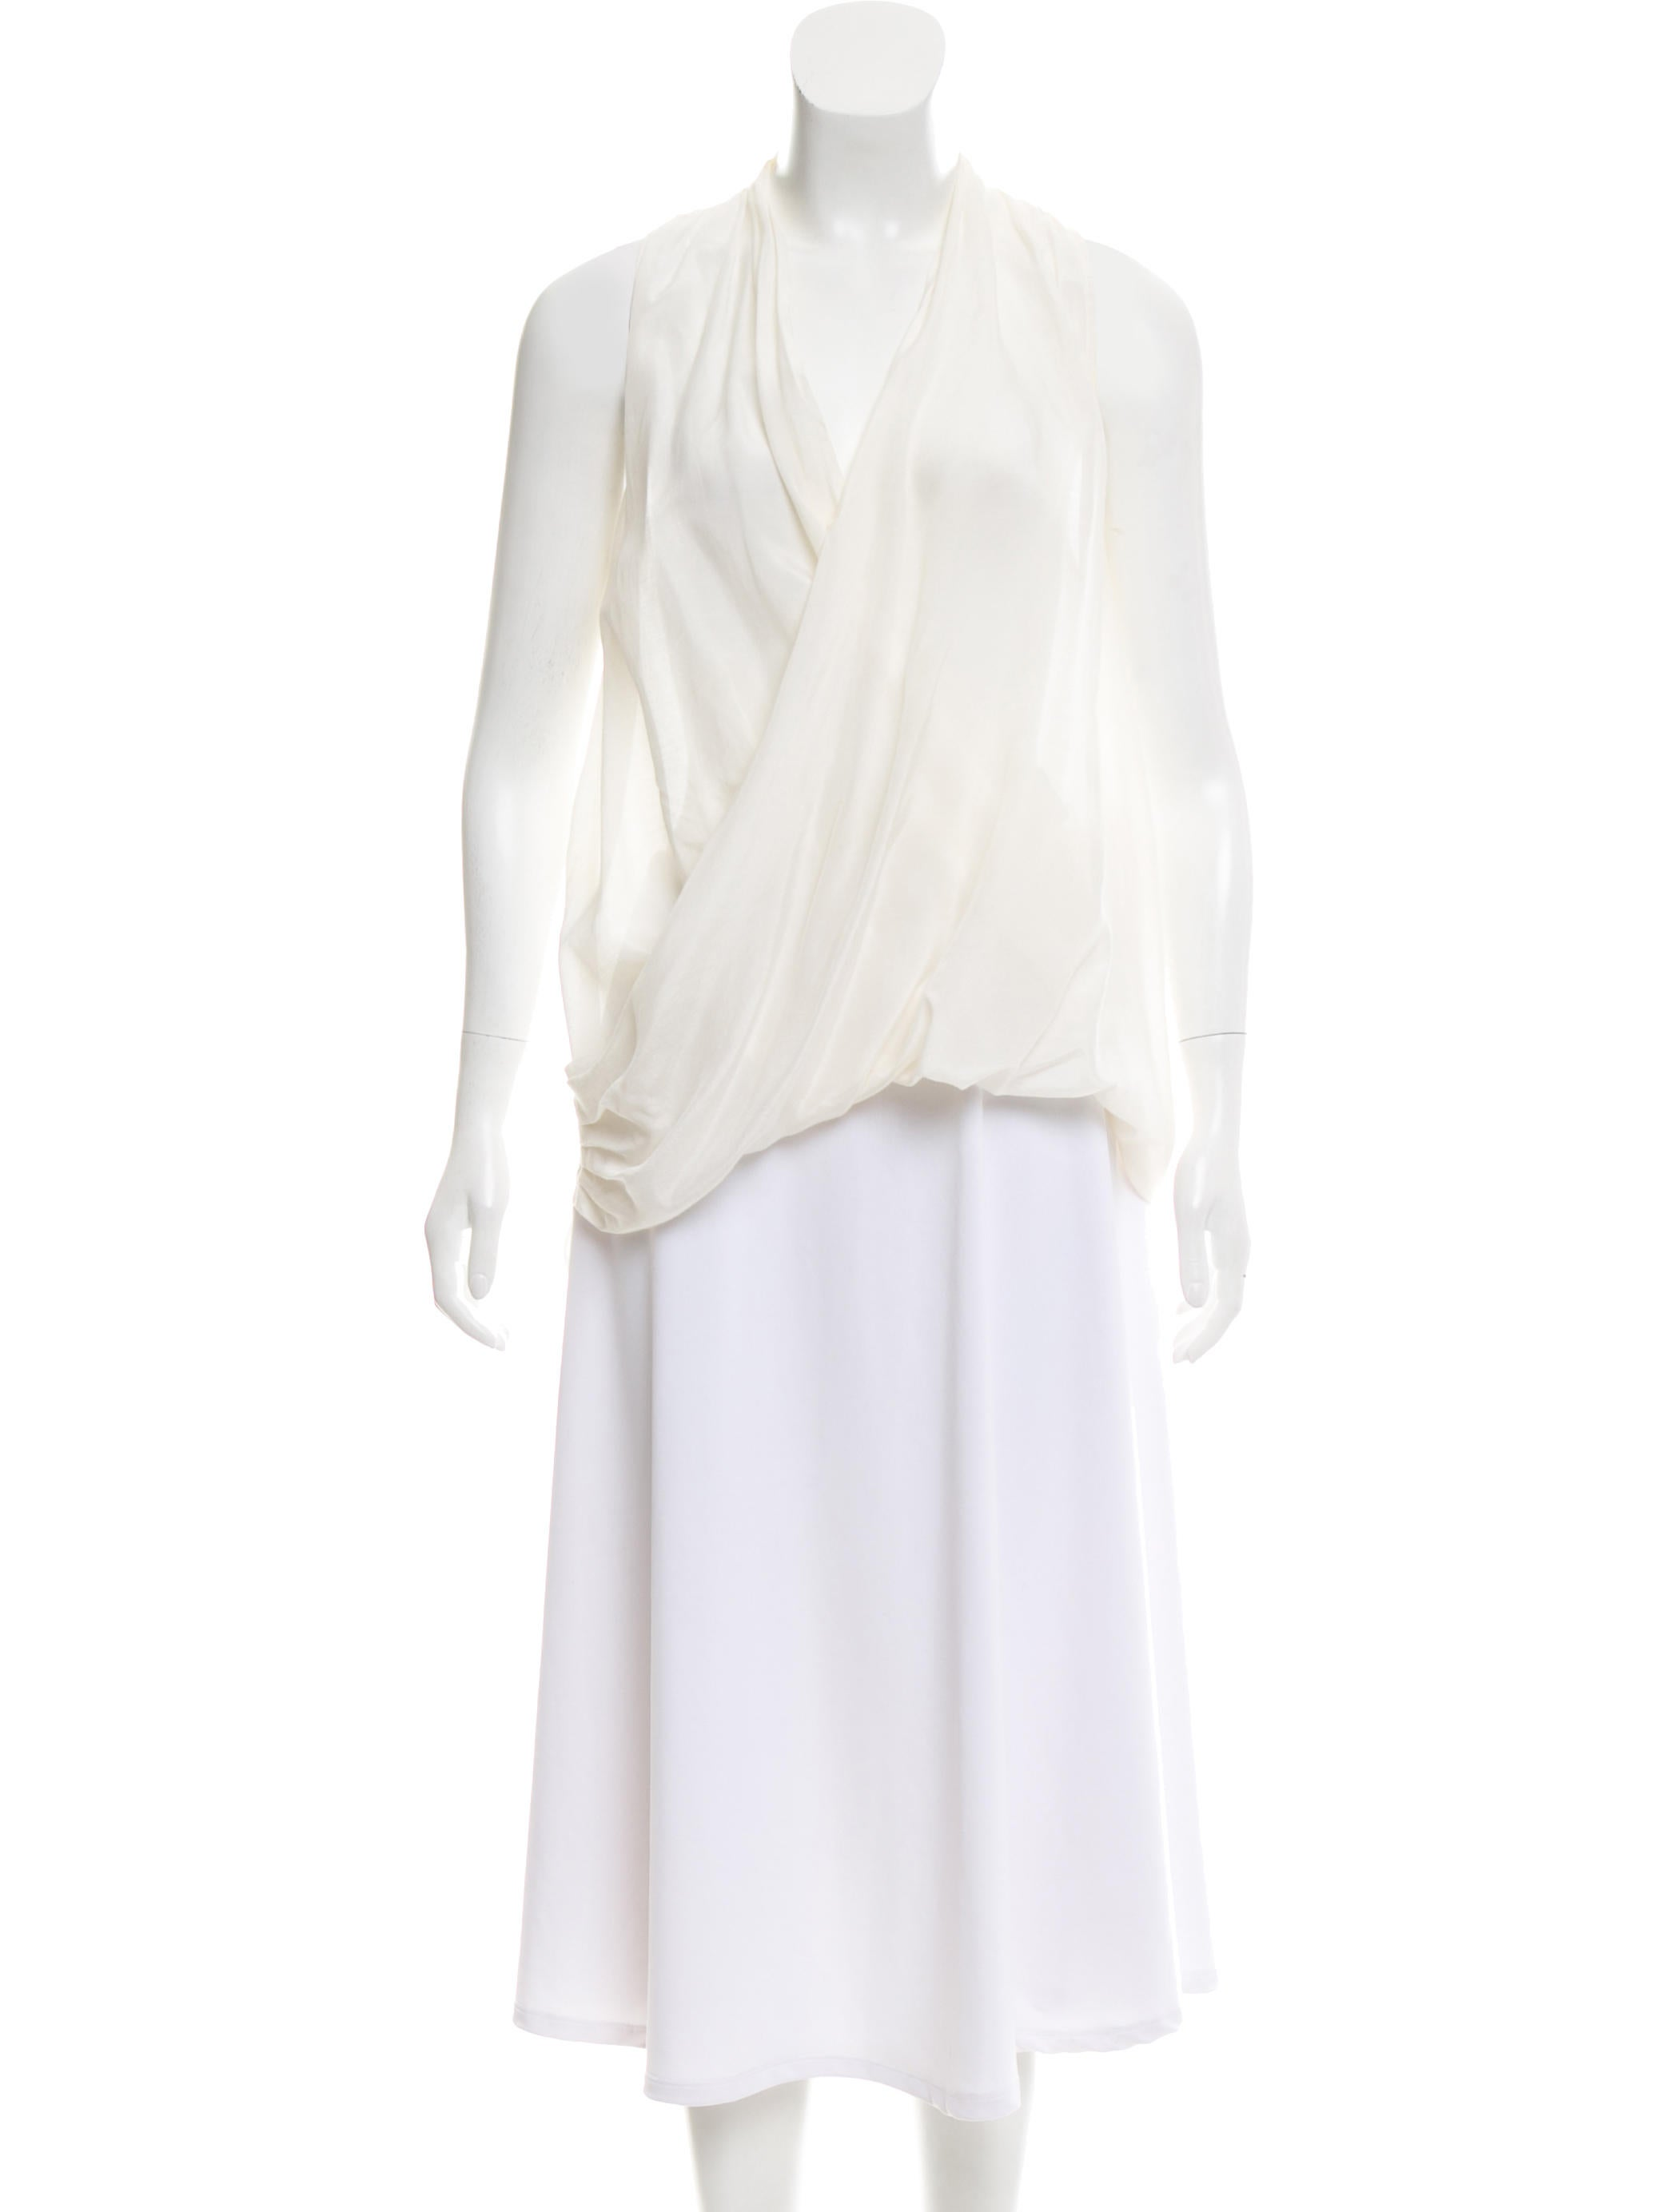 lyst product lanvin drapes blouse in gallery normal clothing draped white